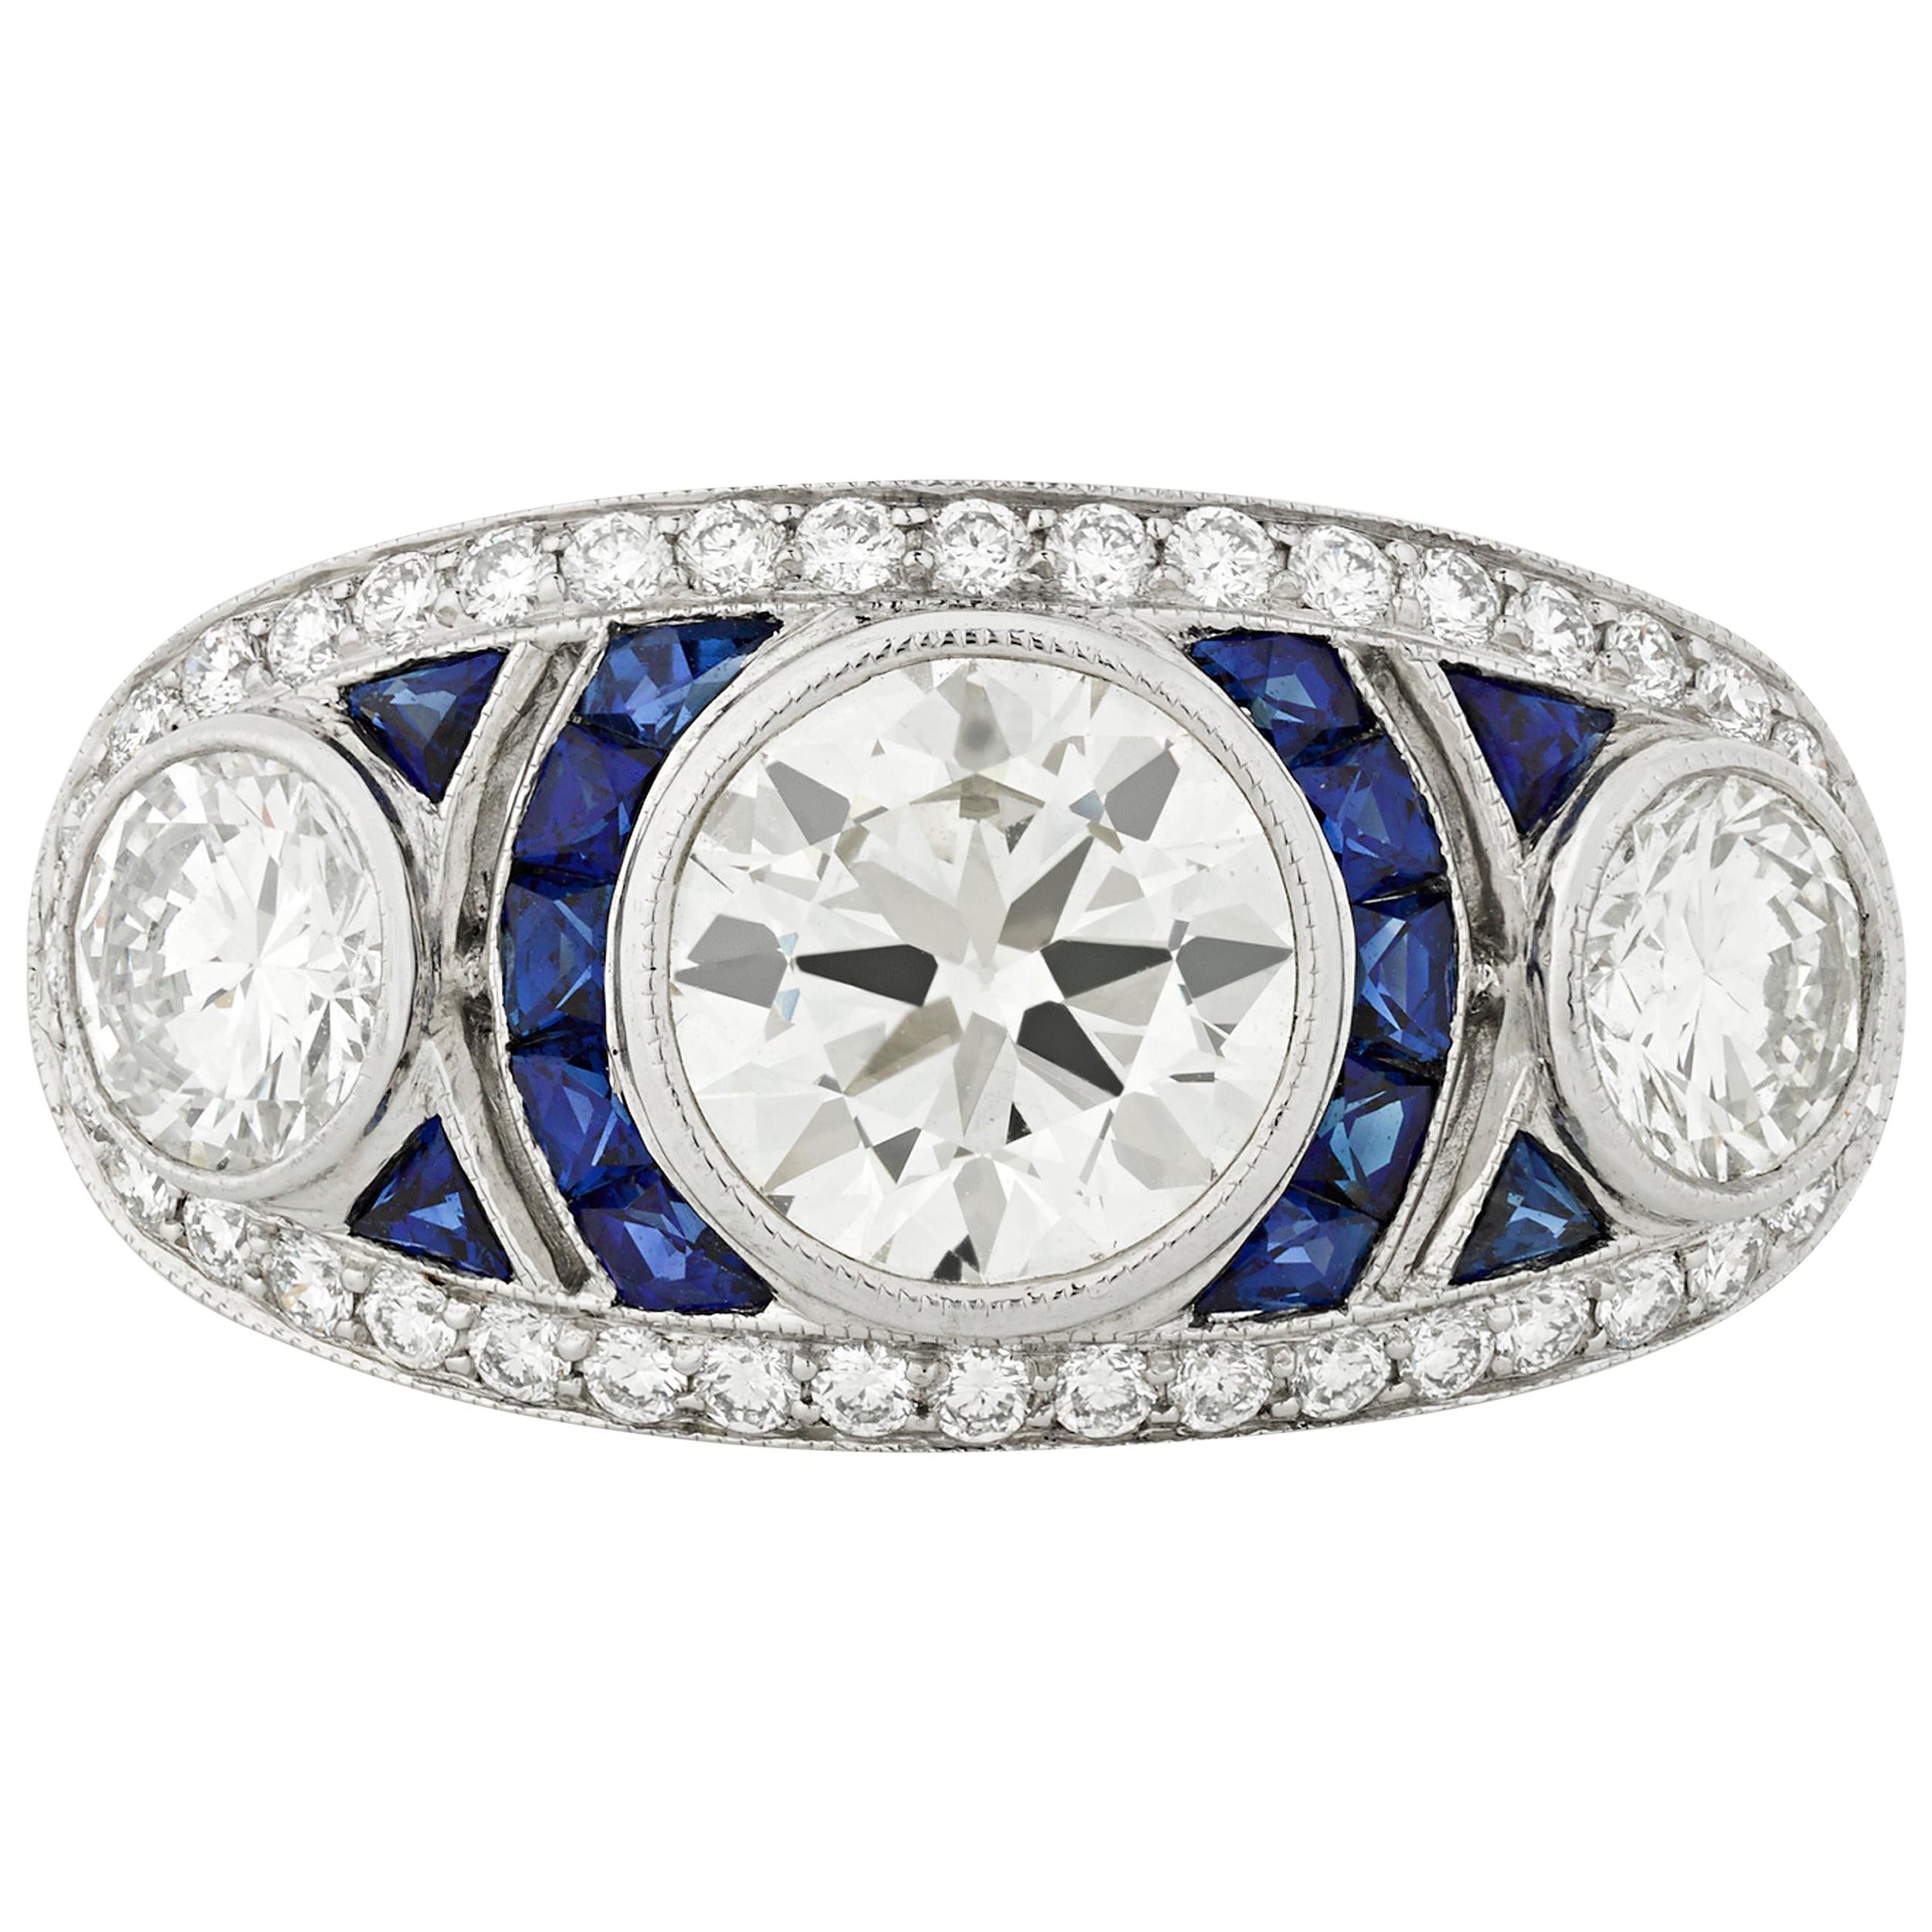 c957bafc51721 Art Deco Three-Stone Rings - 235 For Sale at 1stdibs